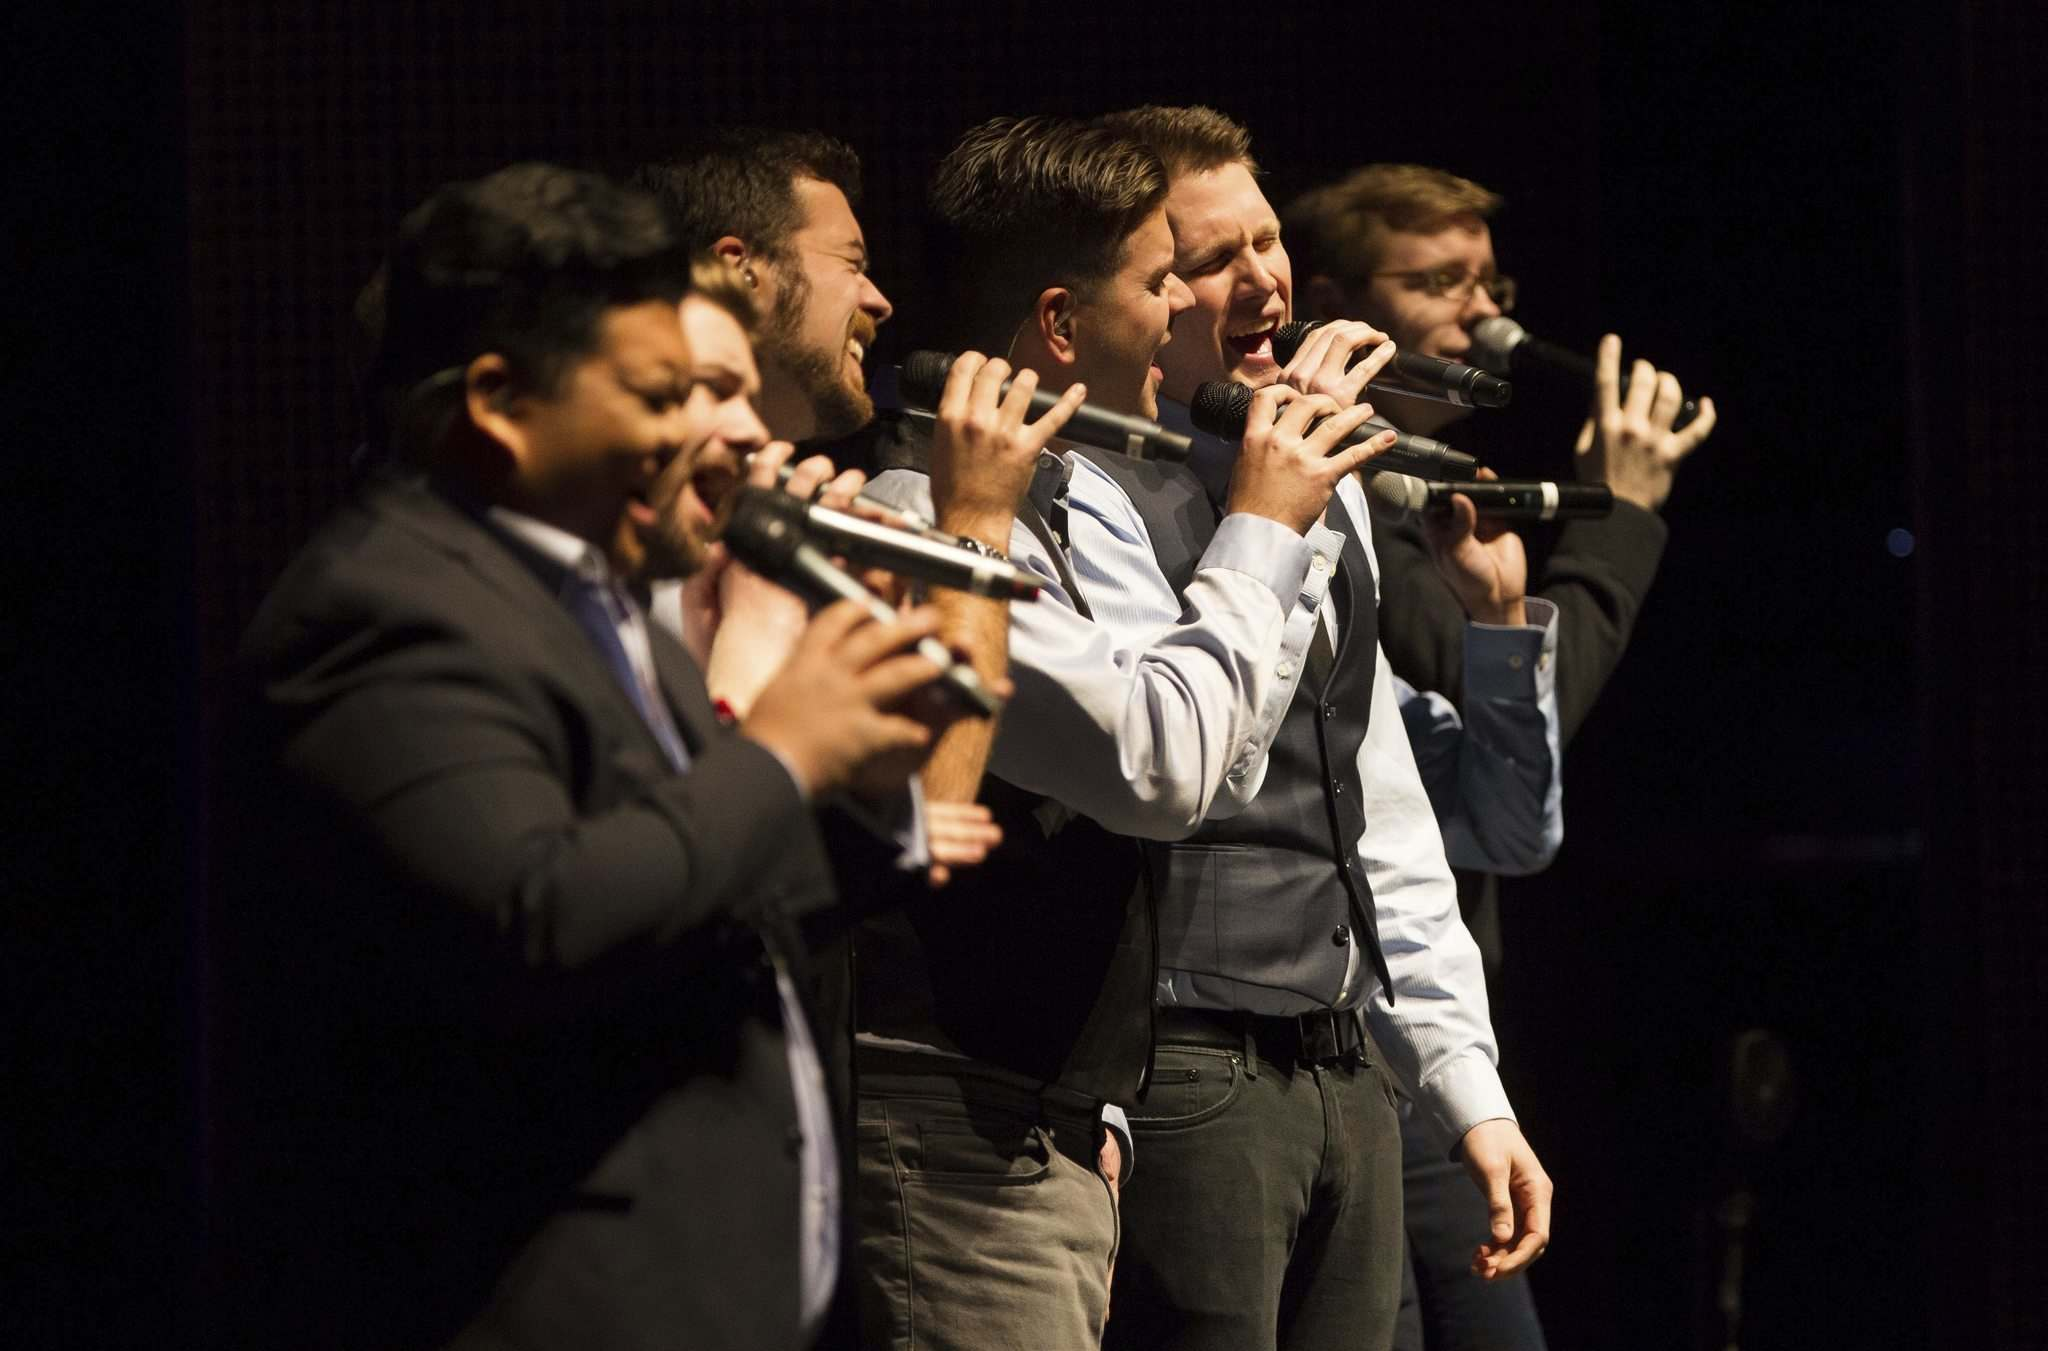 A capella group Those Guys perform three Christmas shows on Dec. 7 and 8. (John Woods / Winnipeg Free Press files)